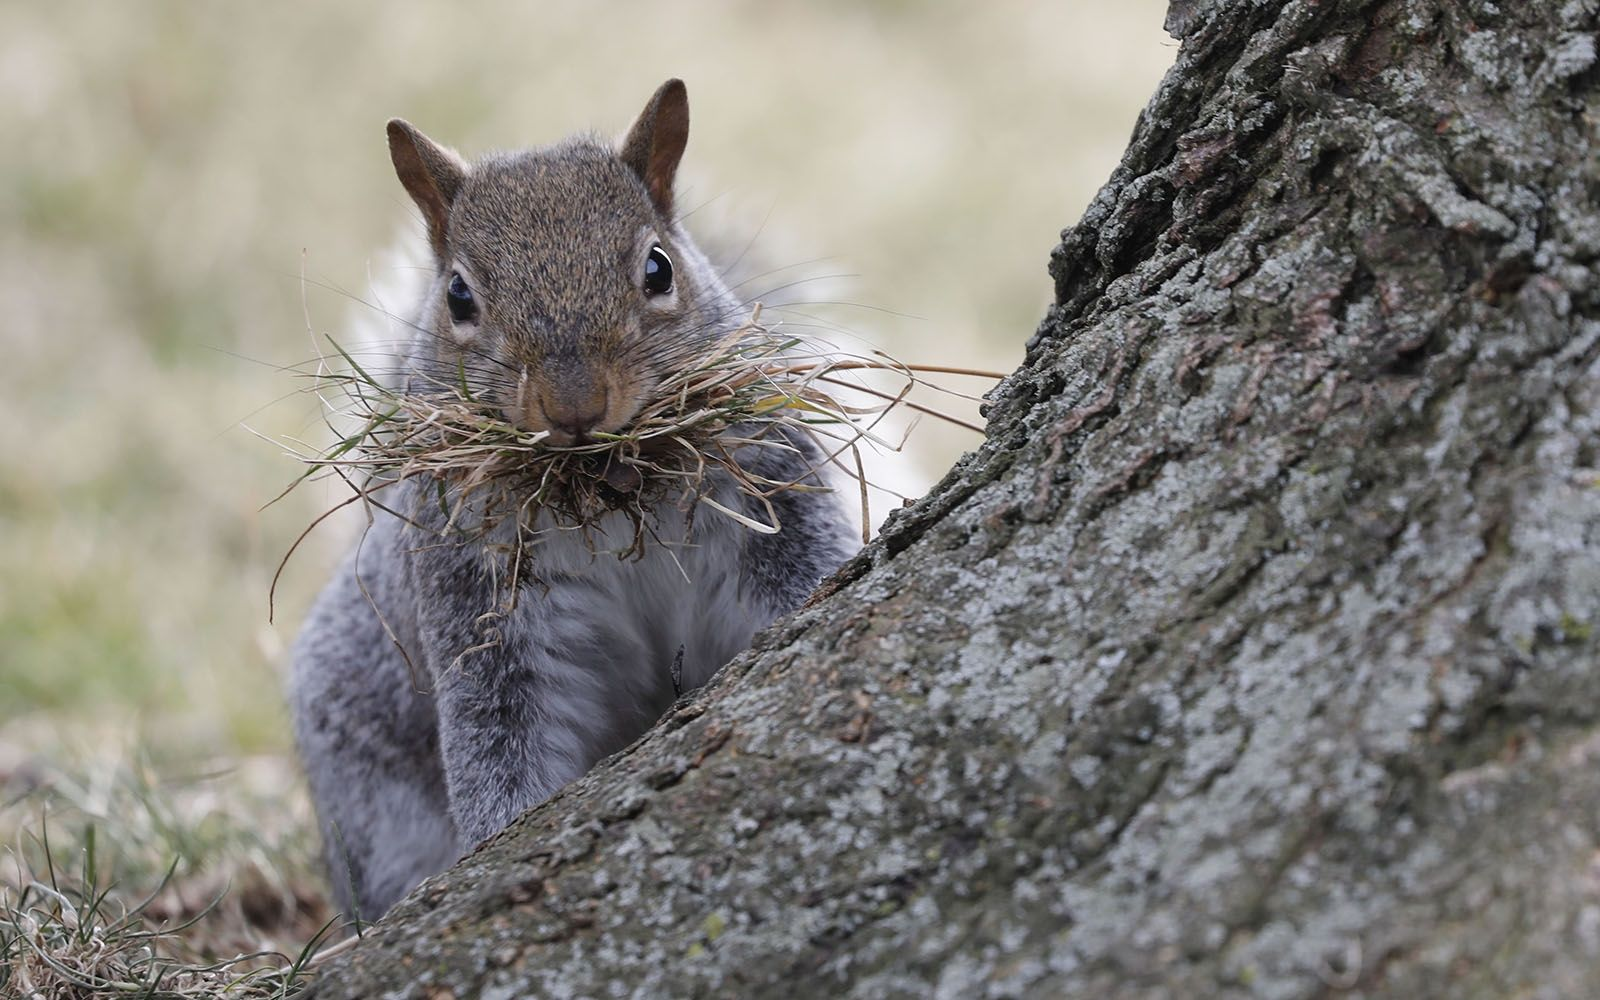 Day 25: Jan. 25, 2020 - A squirrel carries a mouthful of grass while collecting materials for a nest in Erie Basin Marina.